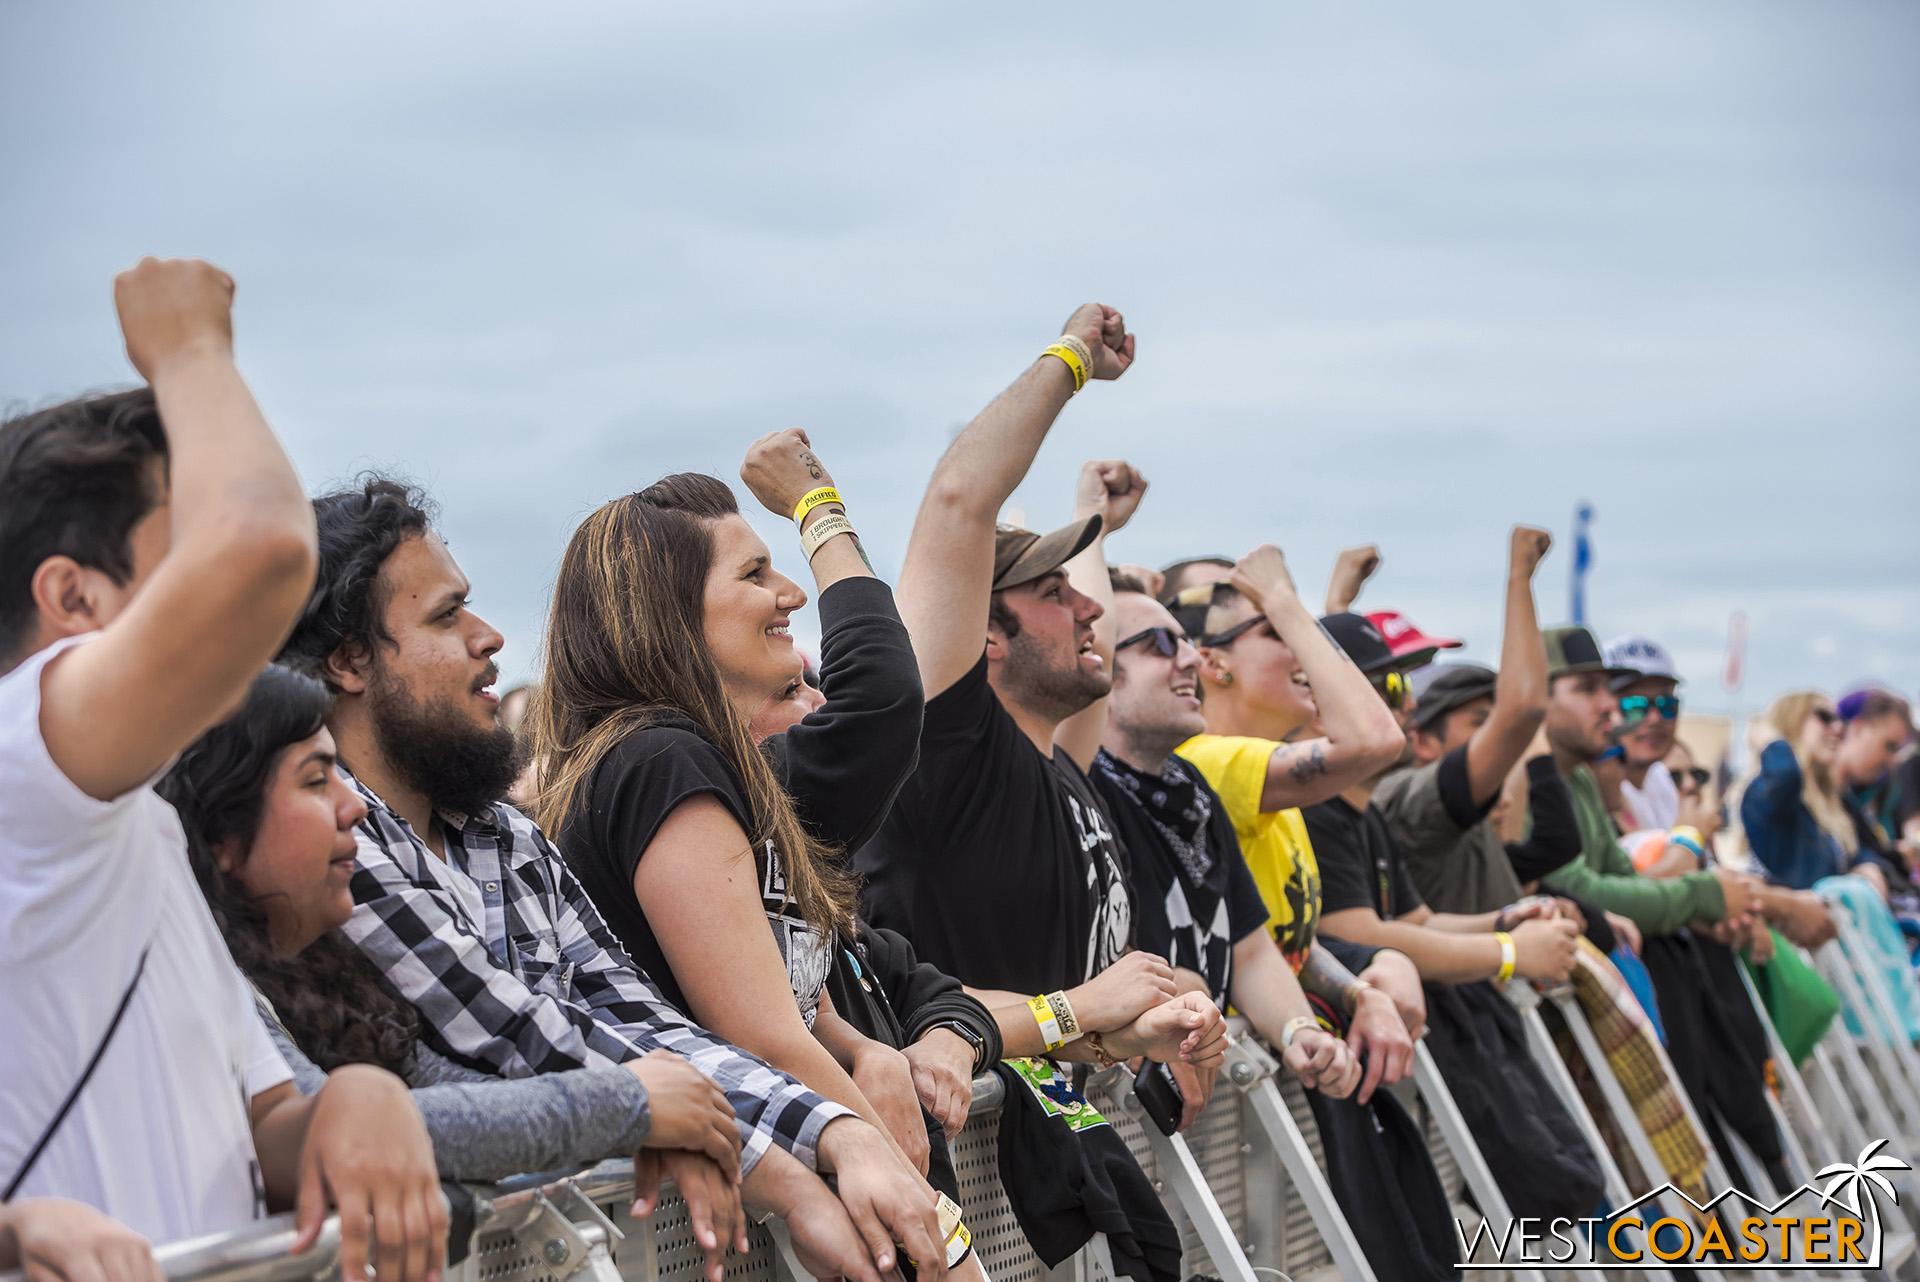 The barrier crowd, full of energy all day.